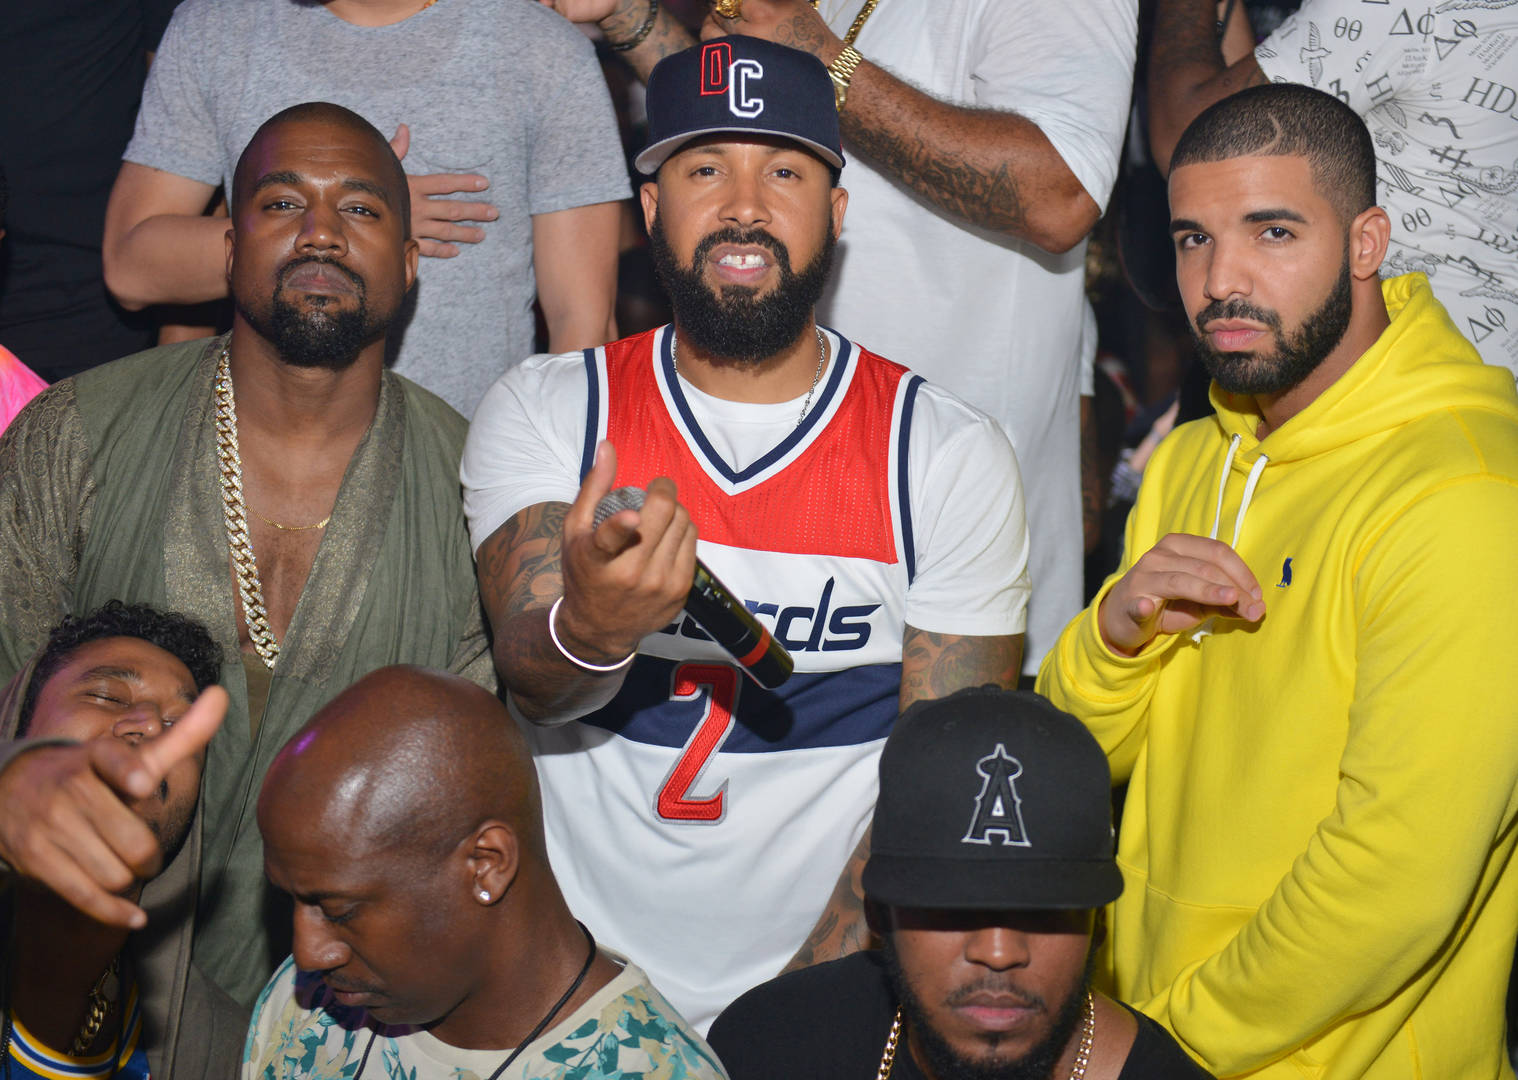 Kanye West, Kenny Burns and Drake attend at Compound on June 20, 2015 in Atlanta, Georgia.